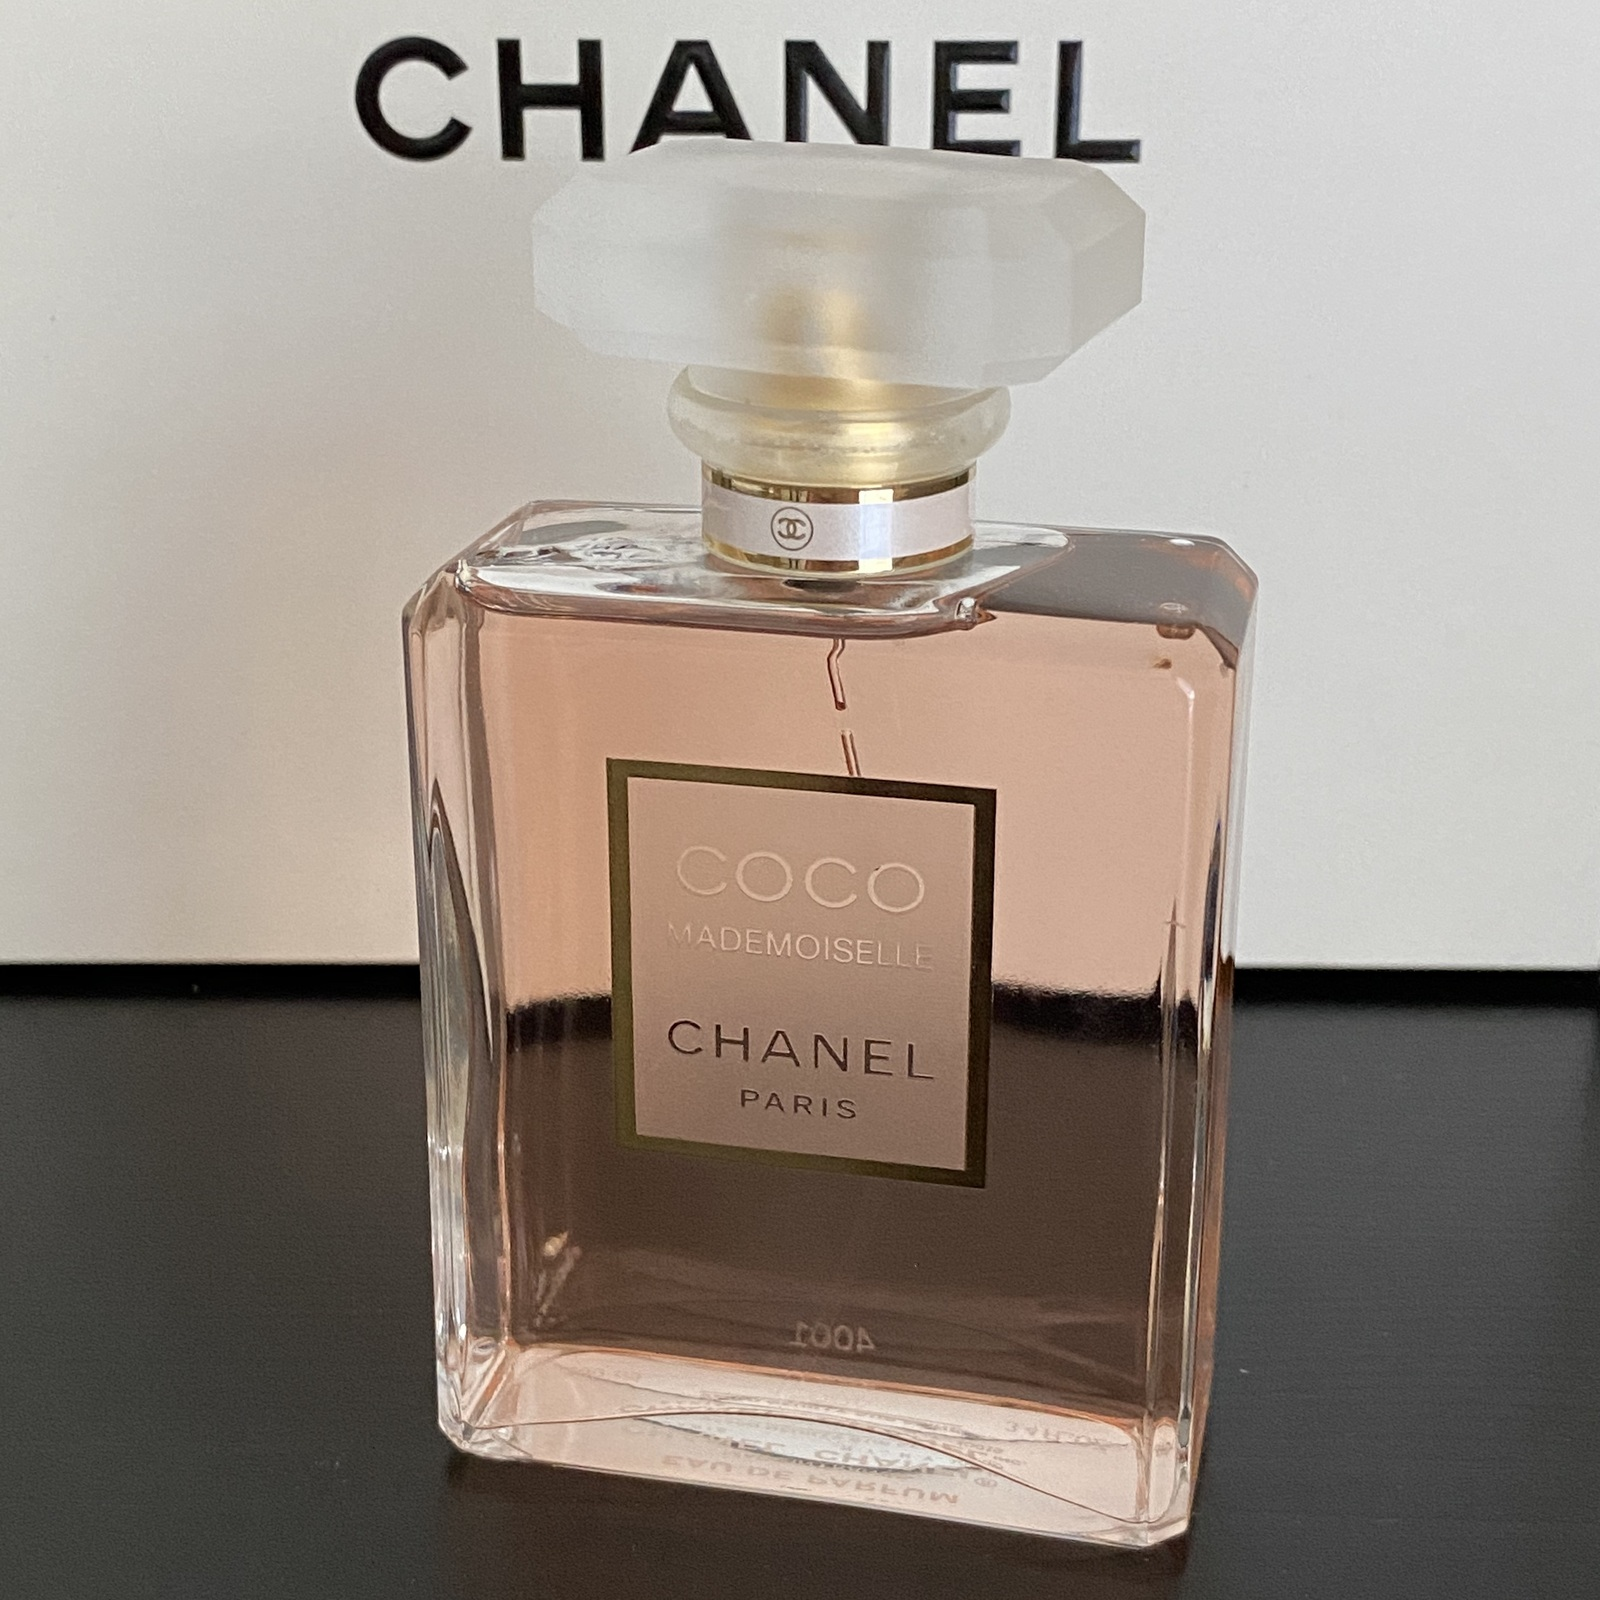 Primary image for Chanel Coco Mademoiselle Eau de Parfum 3.4oz/100ml NEW (no box, batch code 4001)